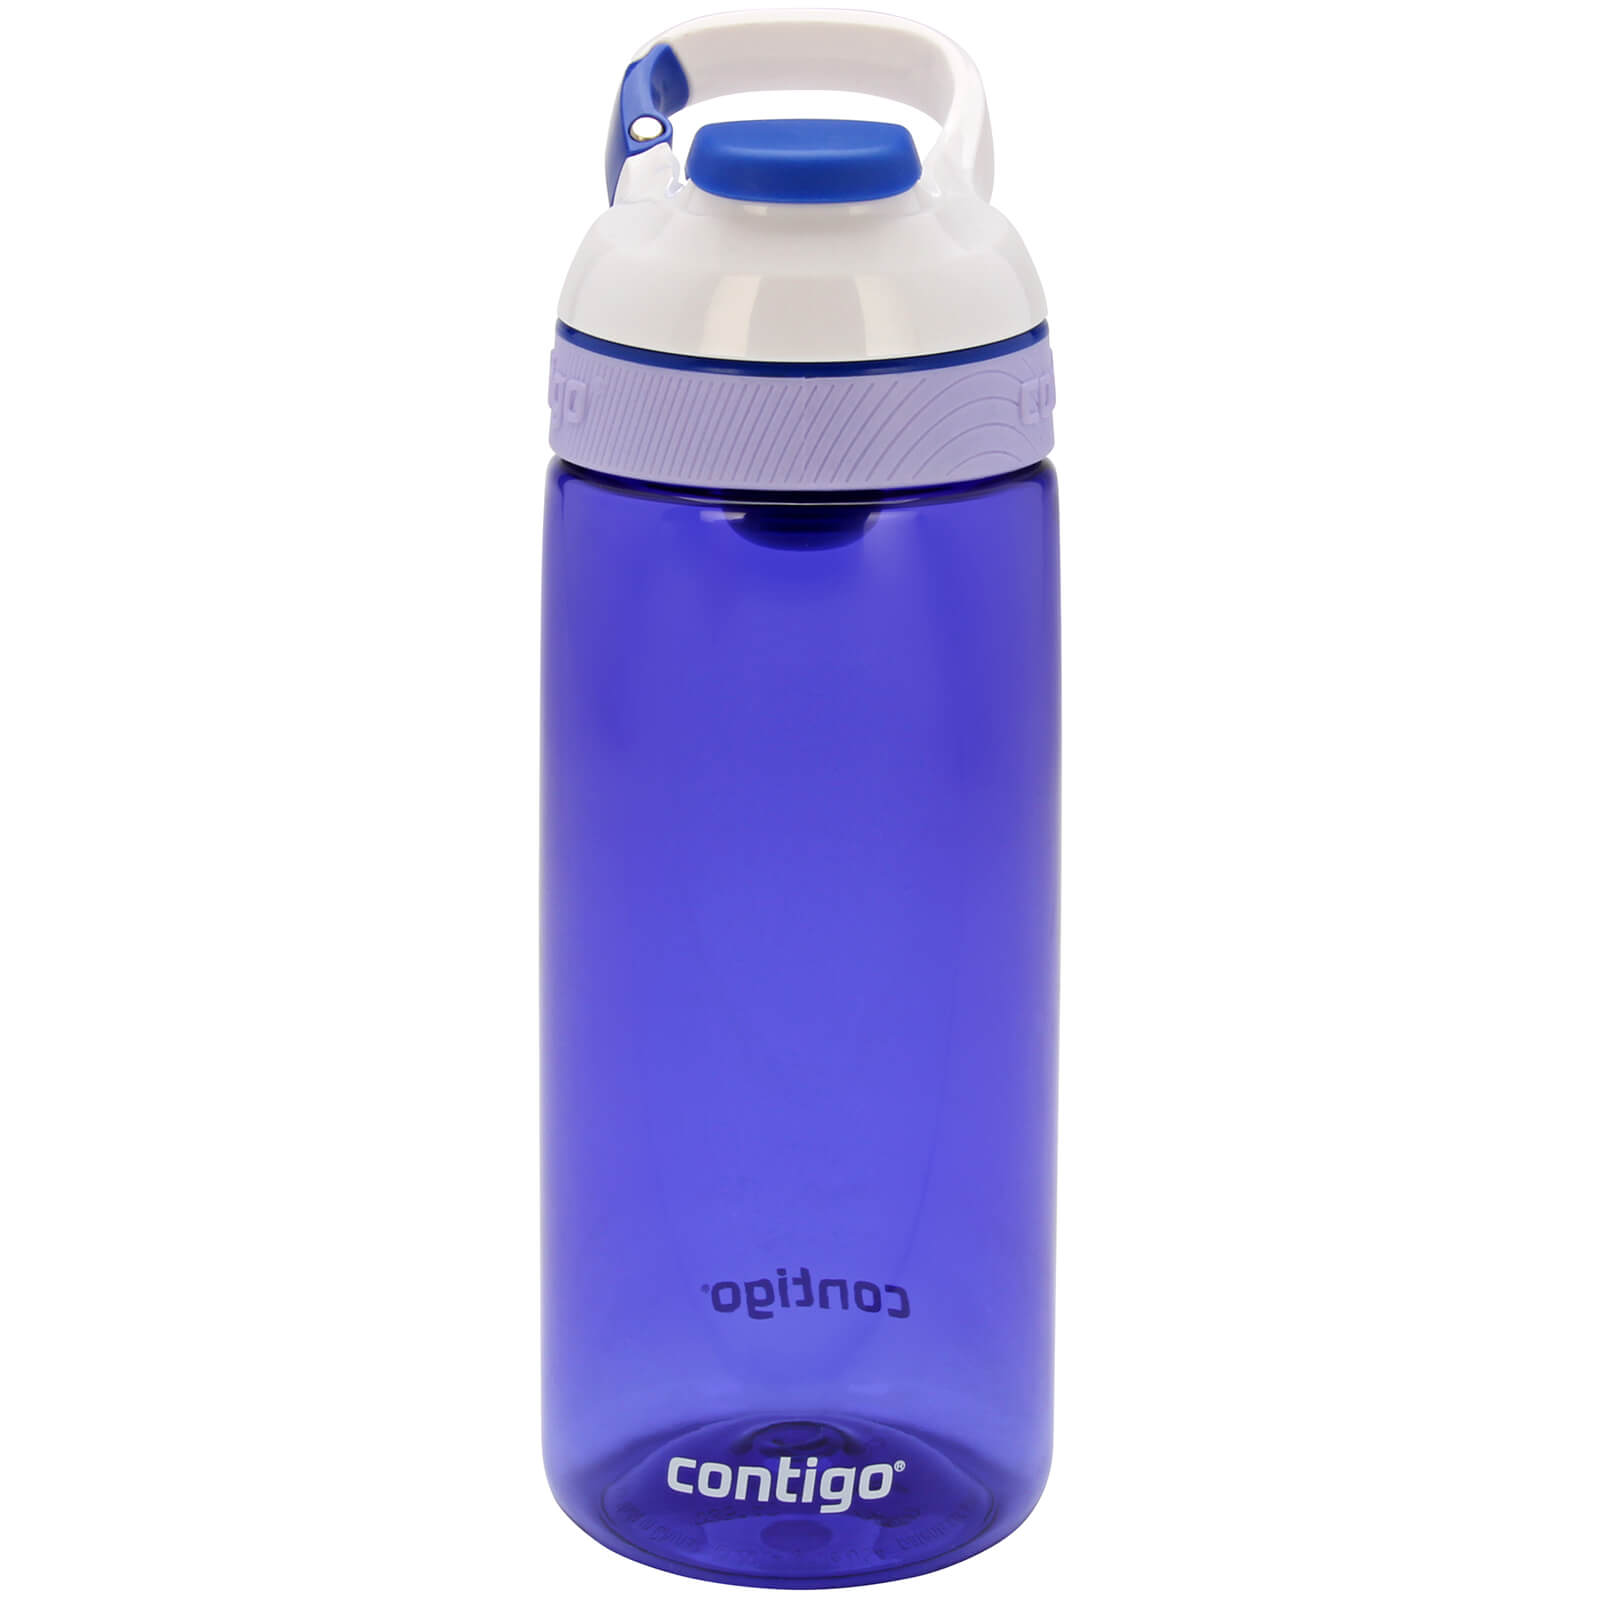 Contigo Courtney Drinks Bottle (590ml) - Cerulean